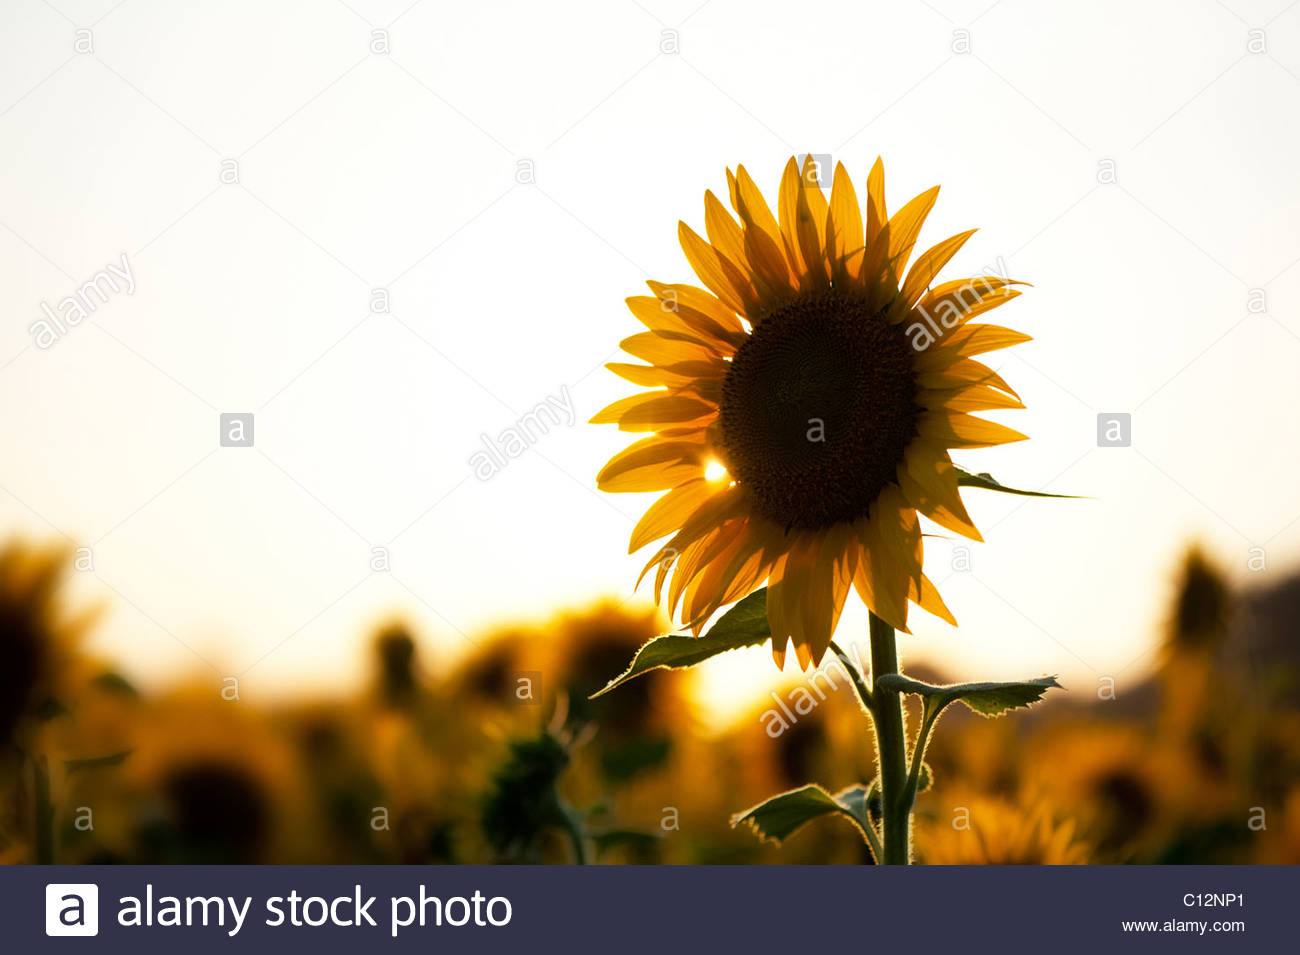 Cultivation of sunflowers in the Indian countryside at sunset, Andhra Pradesh, India - Stock Image